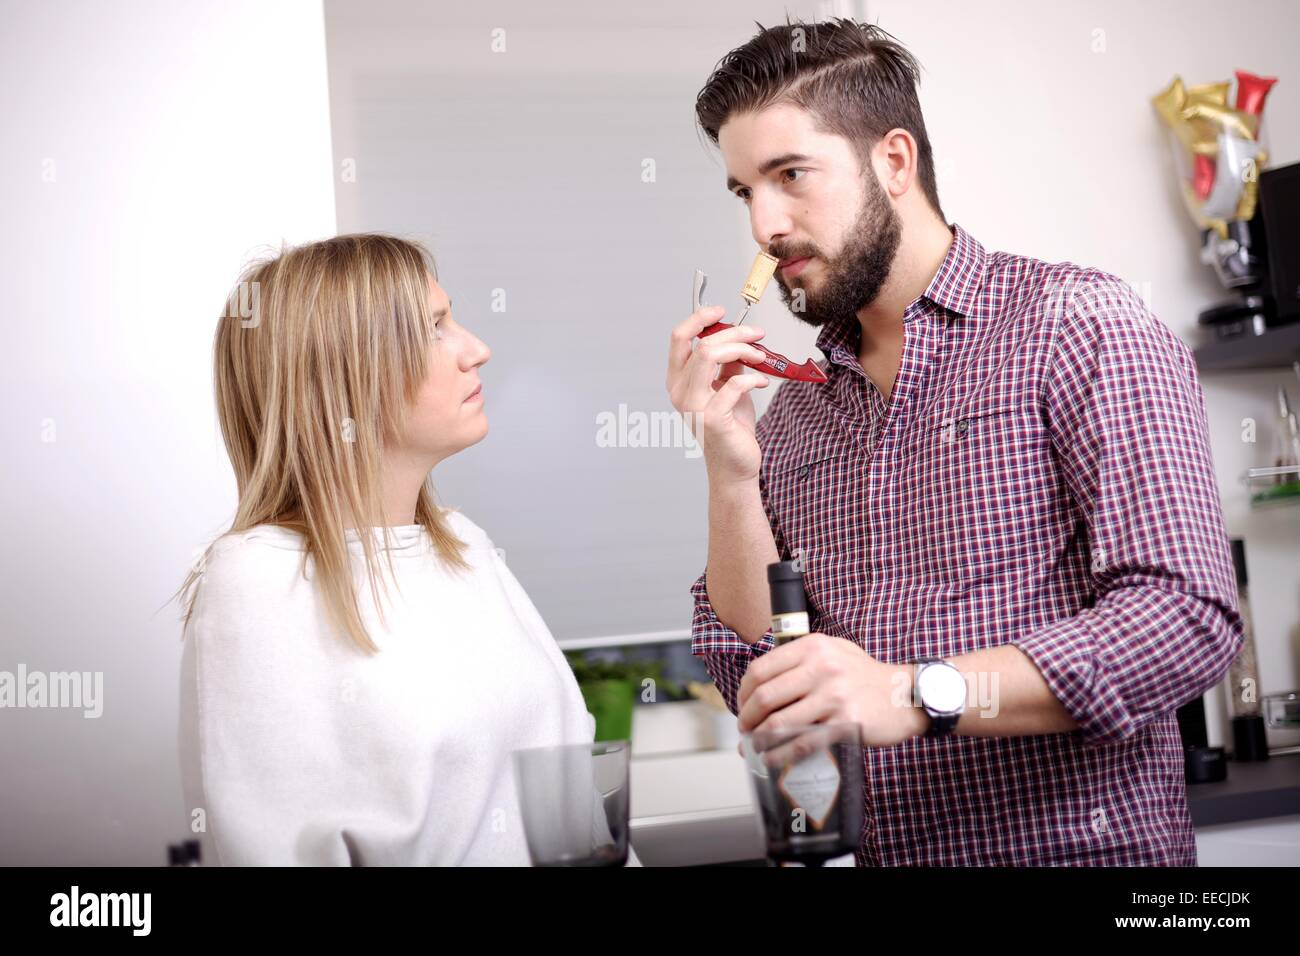 young couple drinking - Stock Image